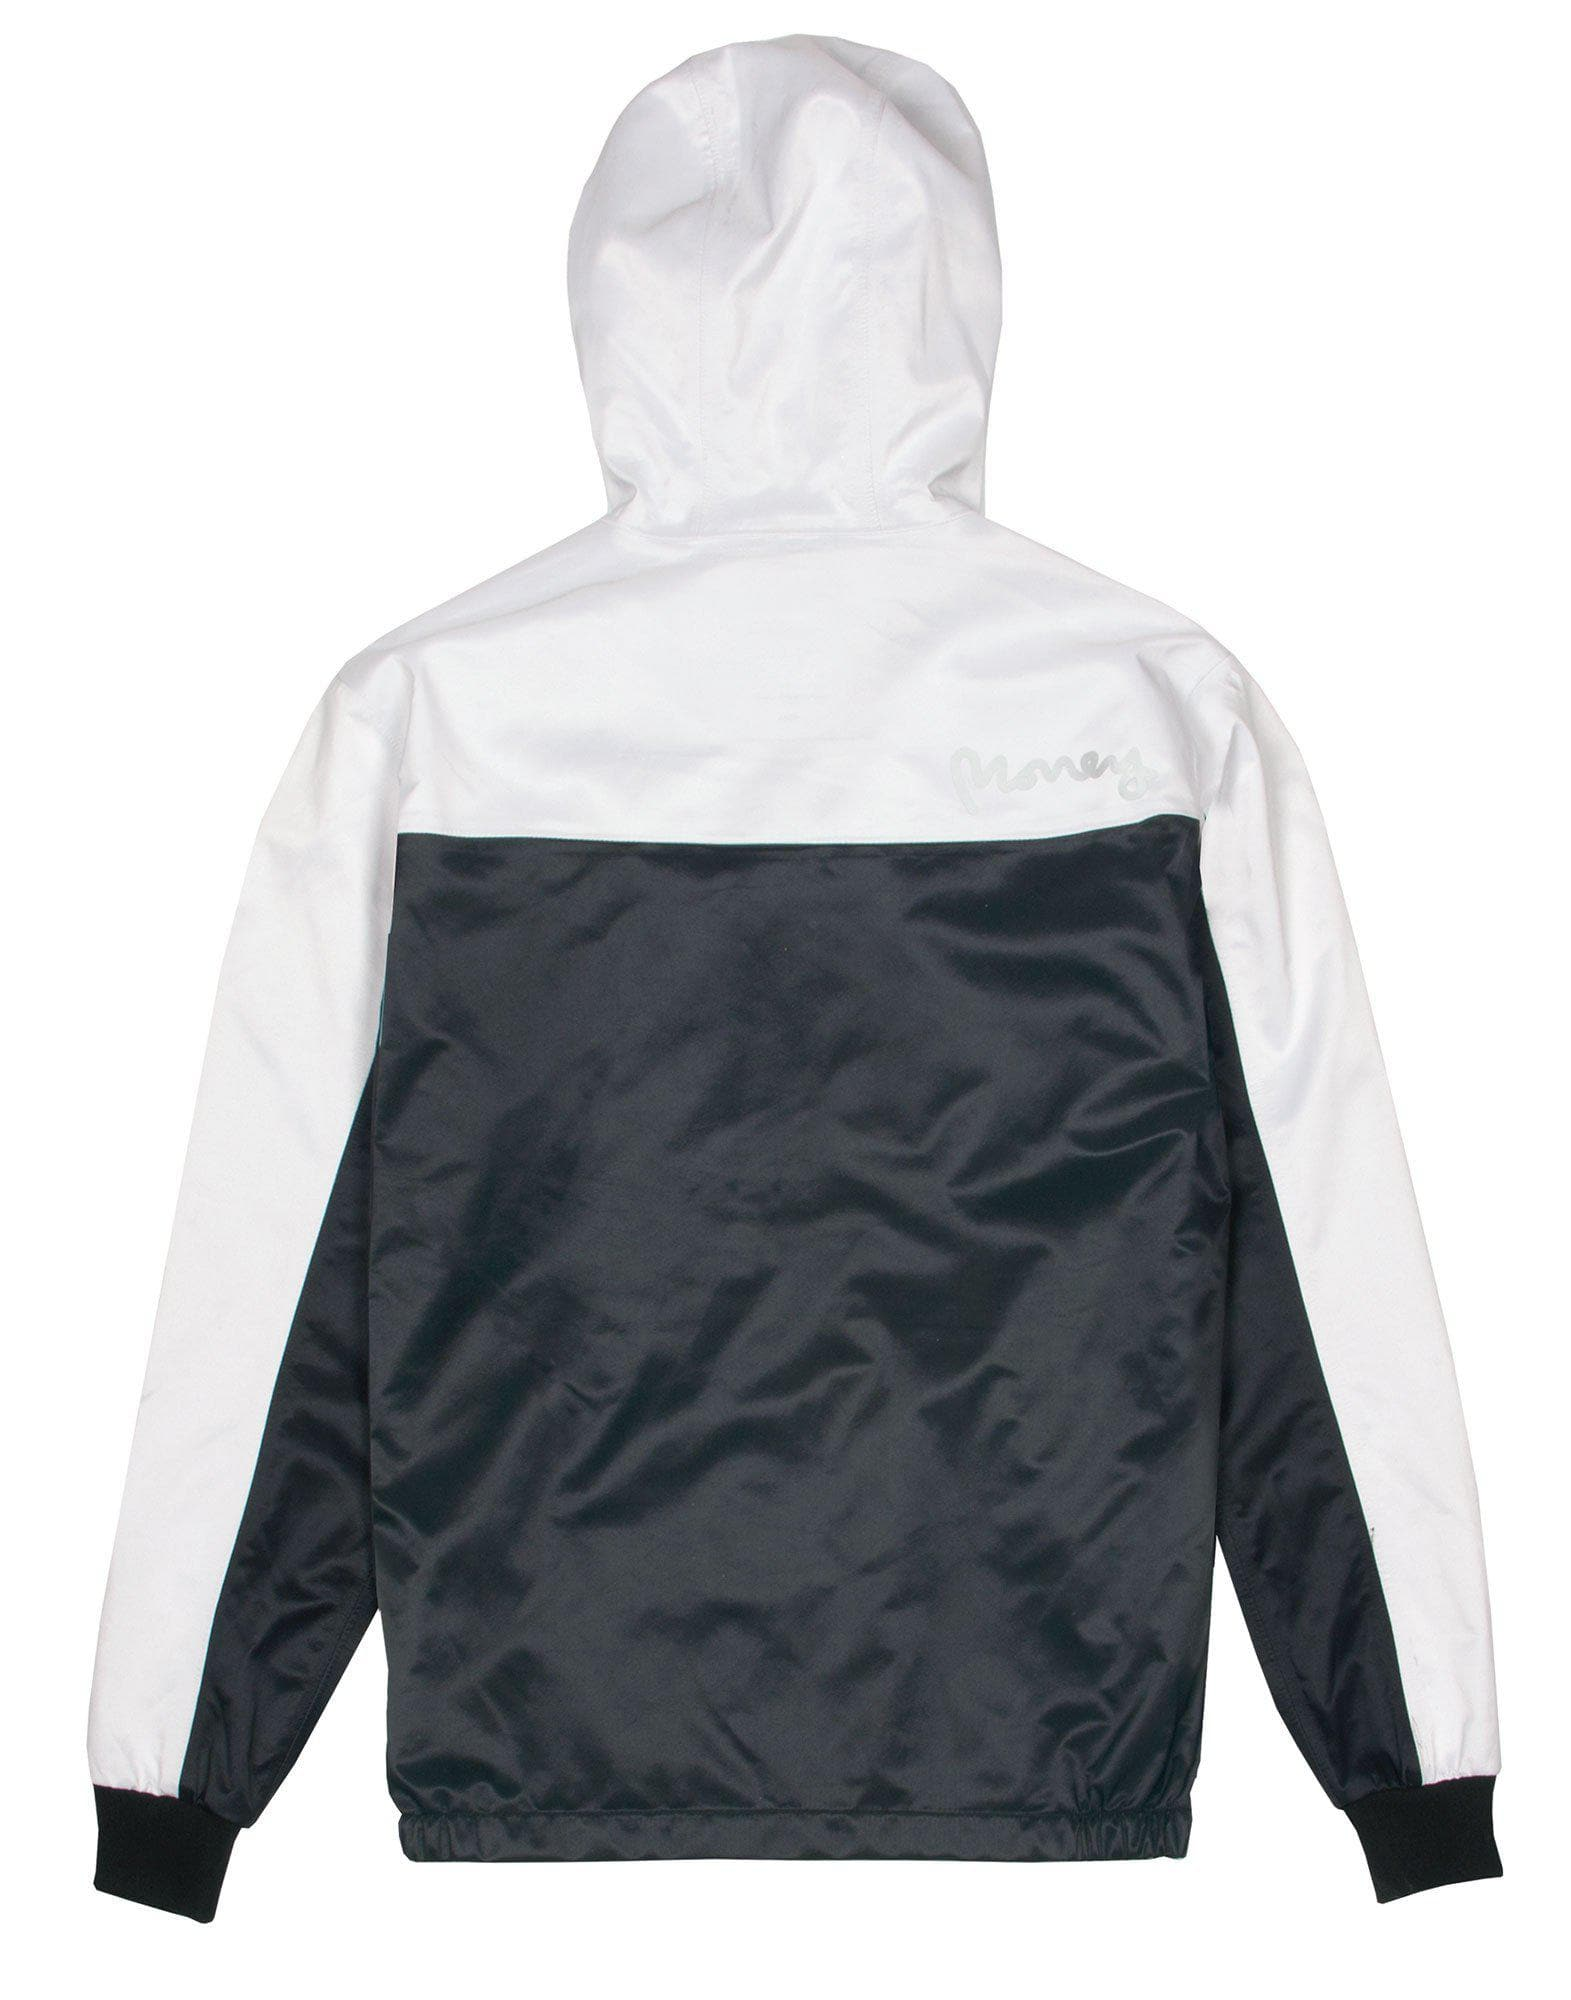 Money Super Panel Jacket